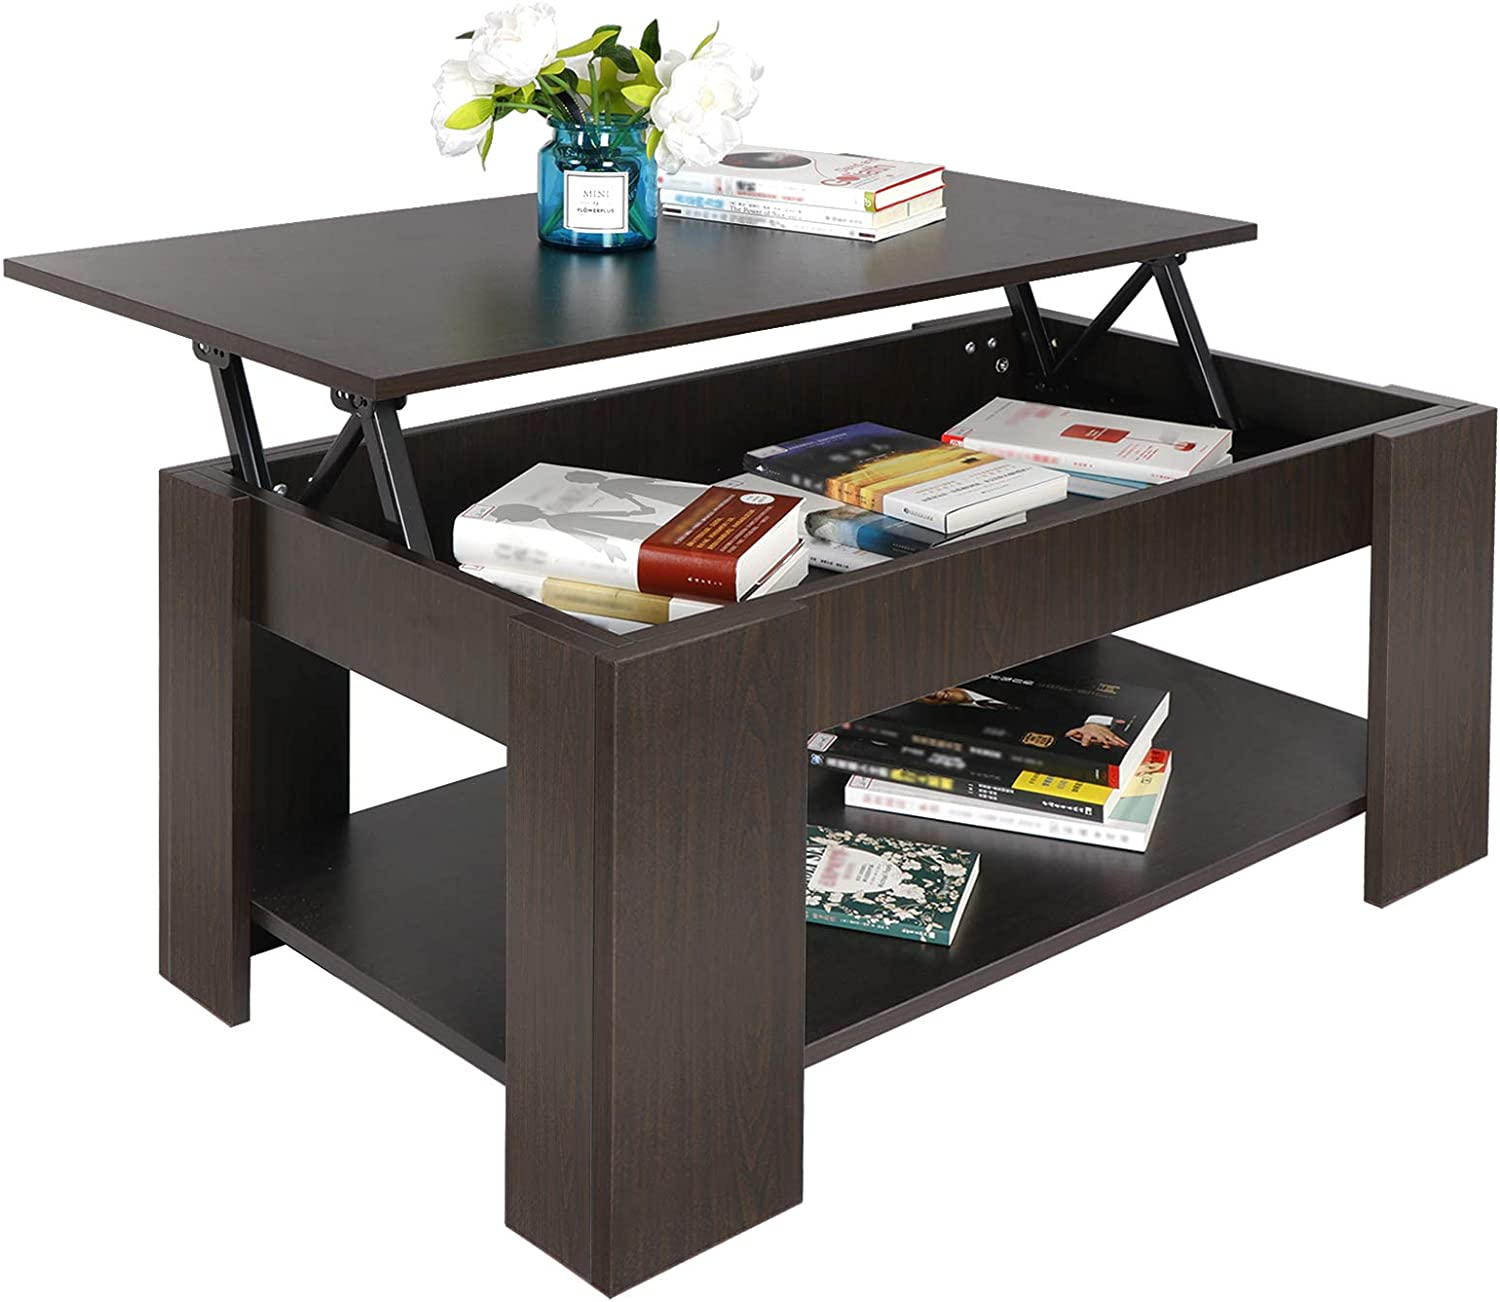 SUPER DEAL Lift Top Coffee Table w/Hidden Compartment and Storage Shelves Pop-Up Storage Cocktail Table (#1)